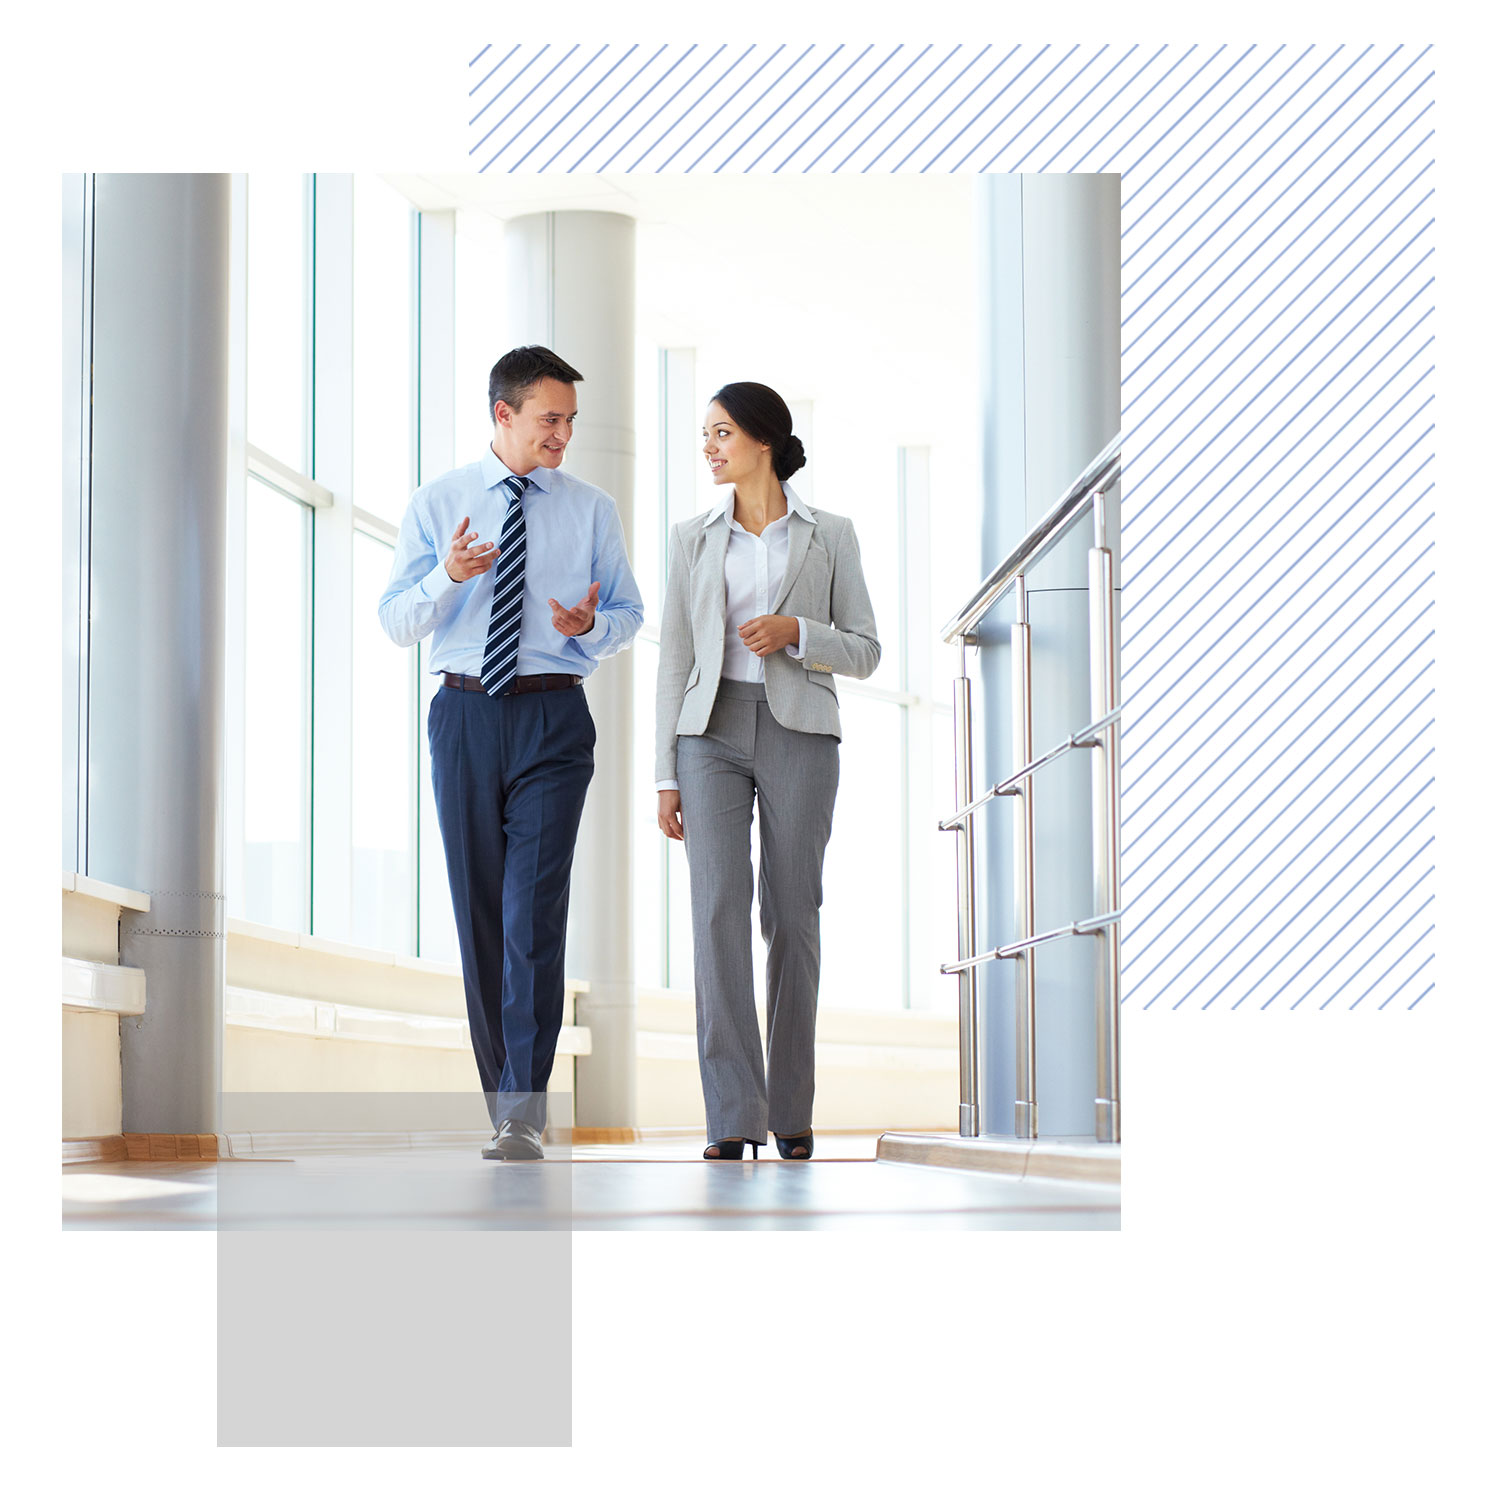 business colleagues walking down a hall in a modern office building